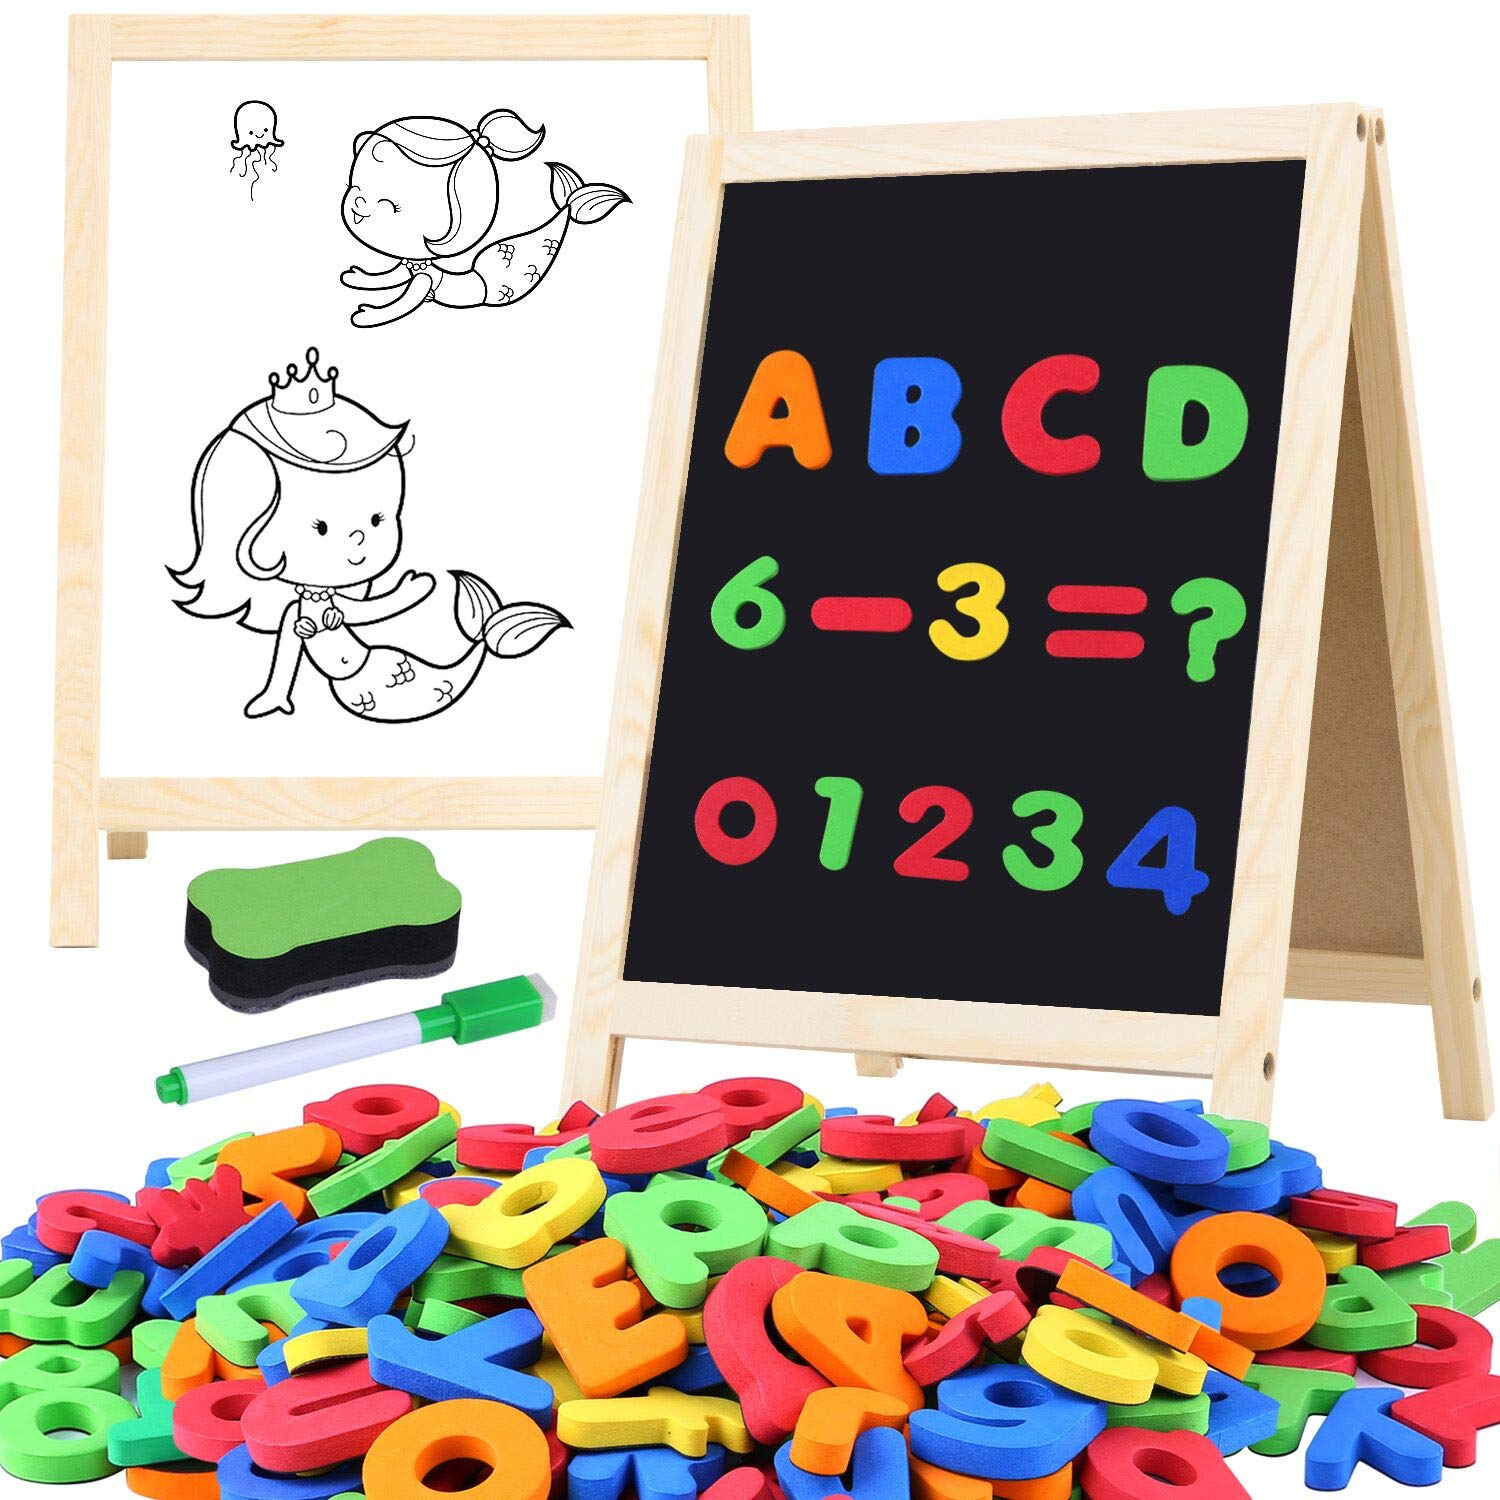 GINMIC Magnetic Letters and Numbers with Easel for Kids/Toddlers, Magnetic Whiteboard & Chalkboard w/Dry Erase Markers, ABC Megnets Alphabet Letters Learning Set, Classroom Home Education Toys